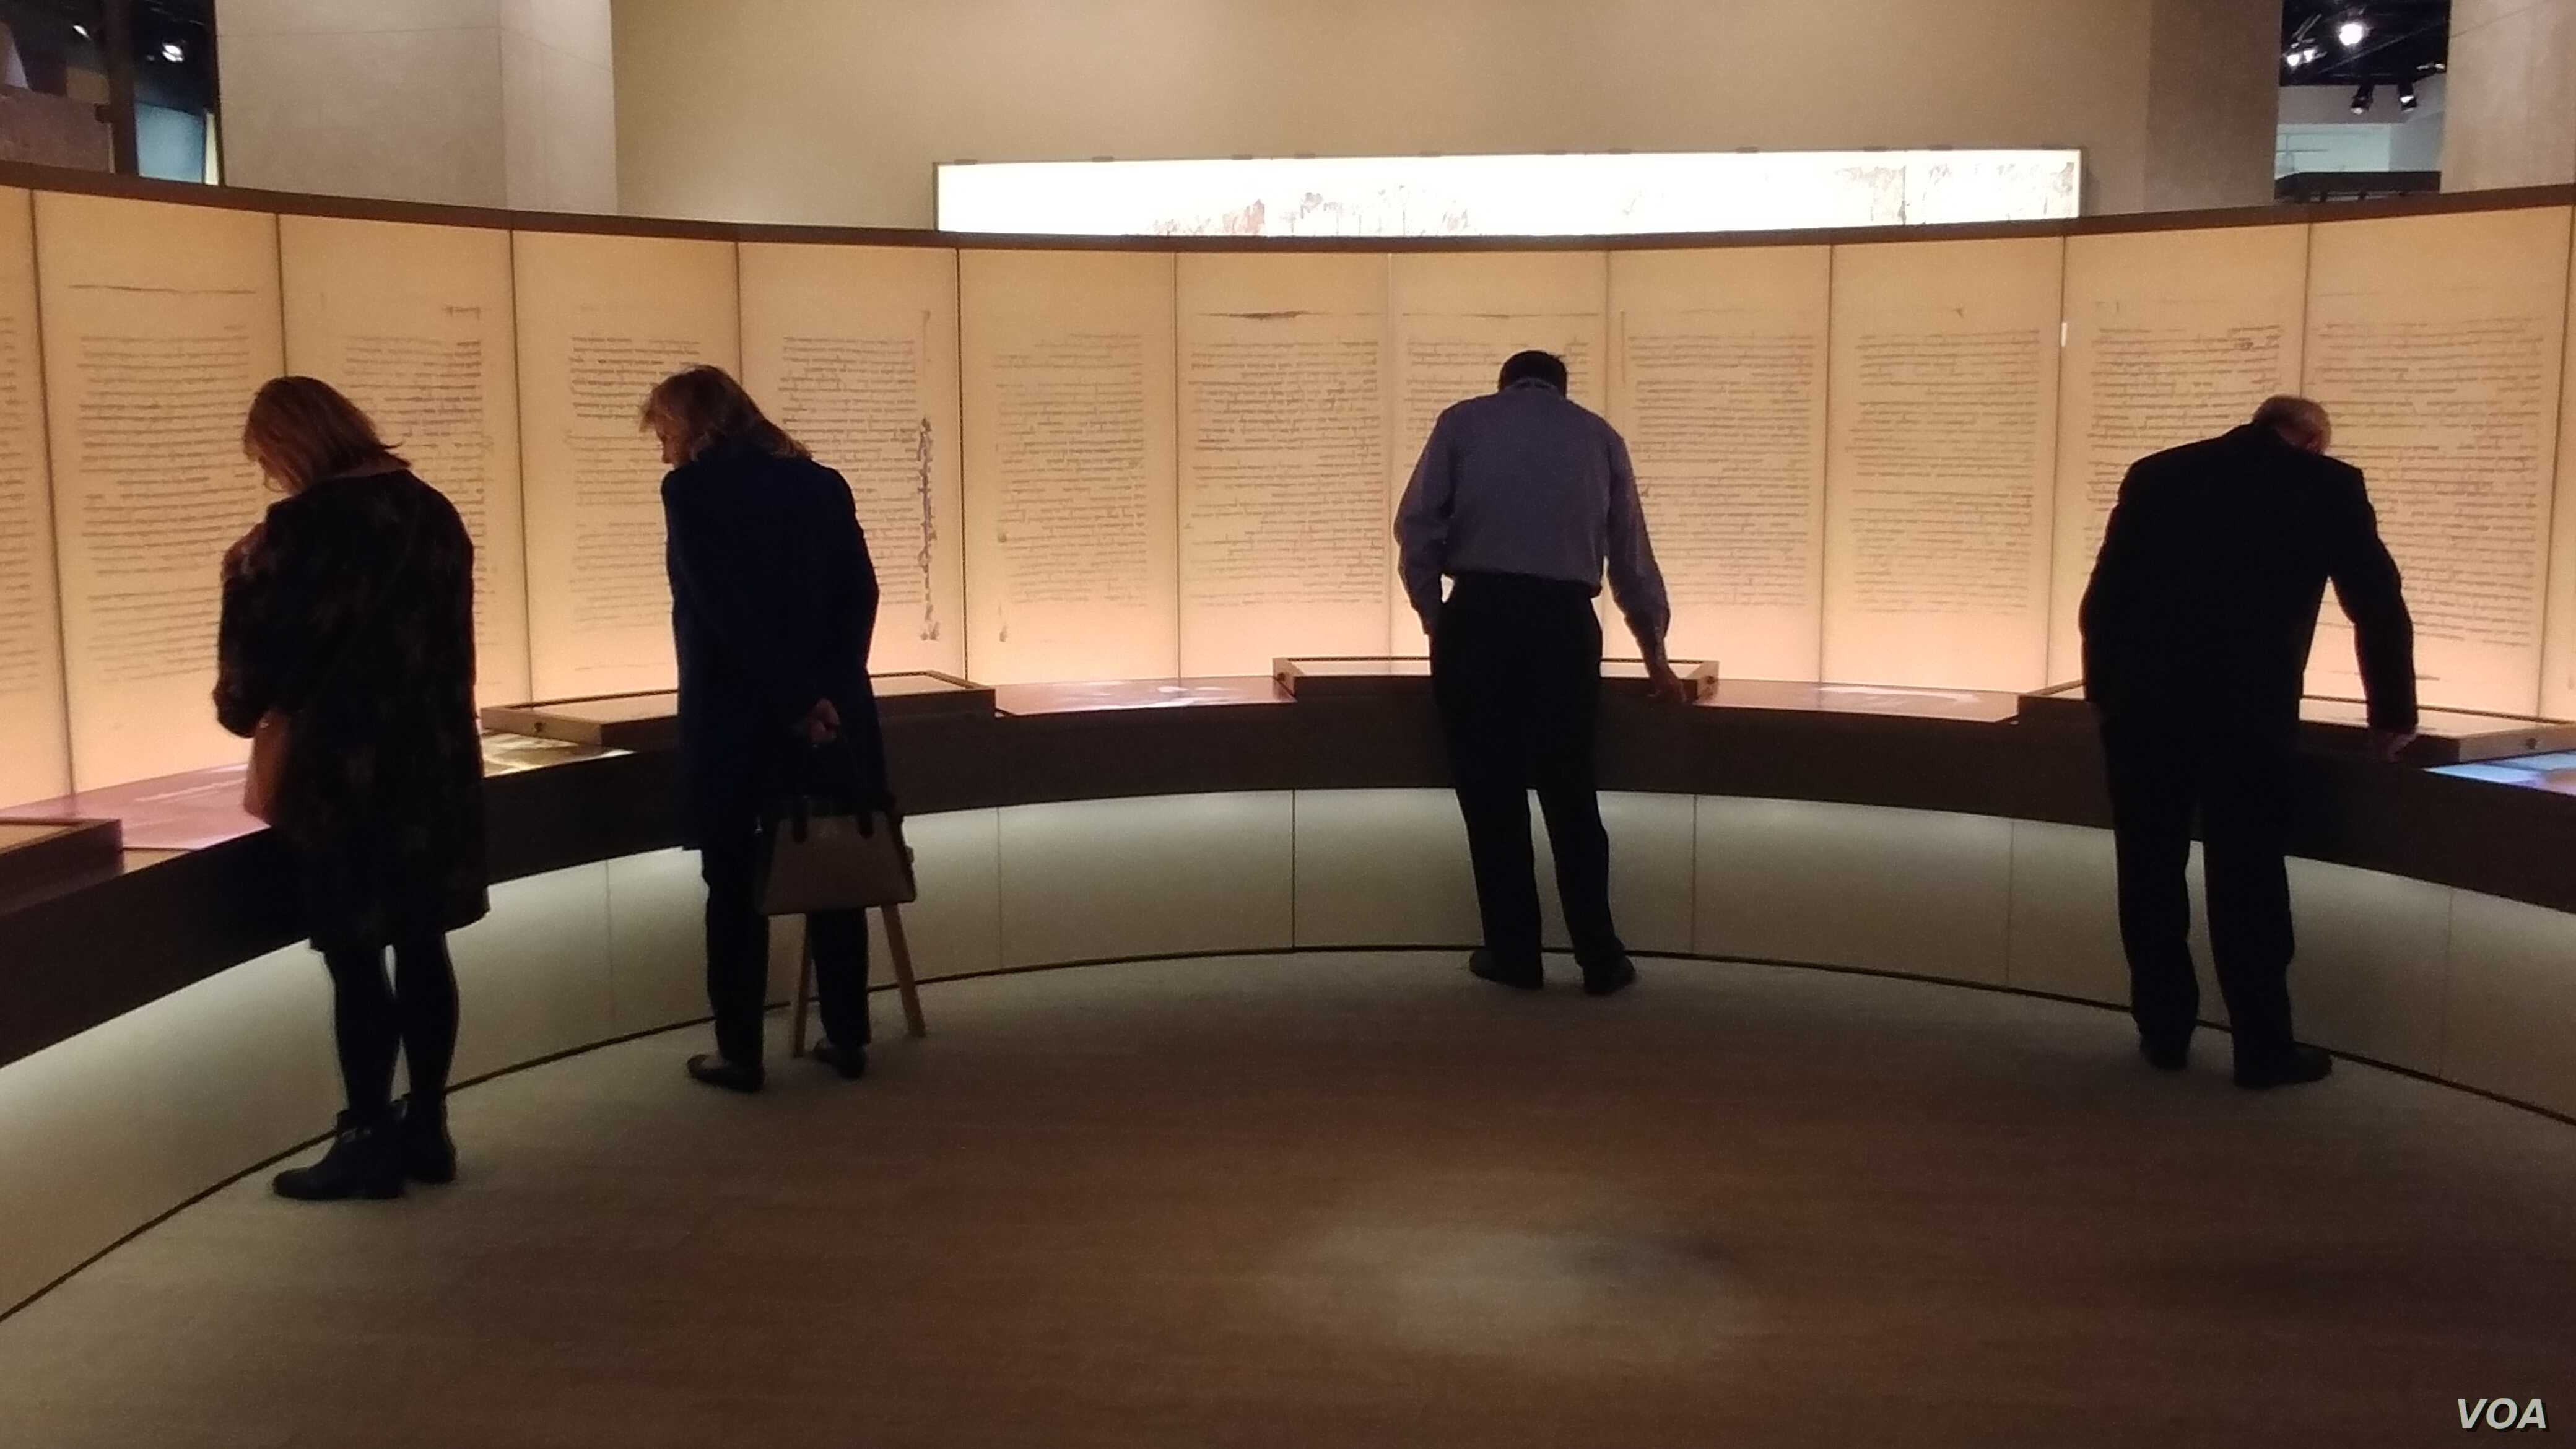 The museum contains rare biblical texts and ancient artifacts. In also has replicas of texts such as the Dead Sea scrolls.